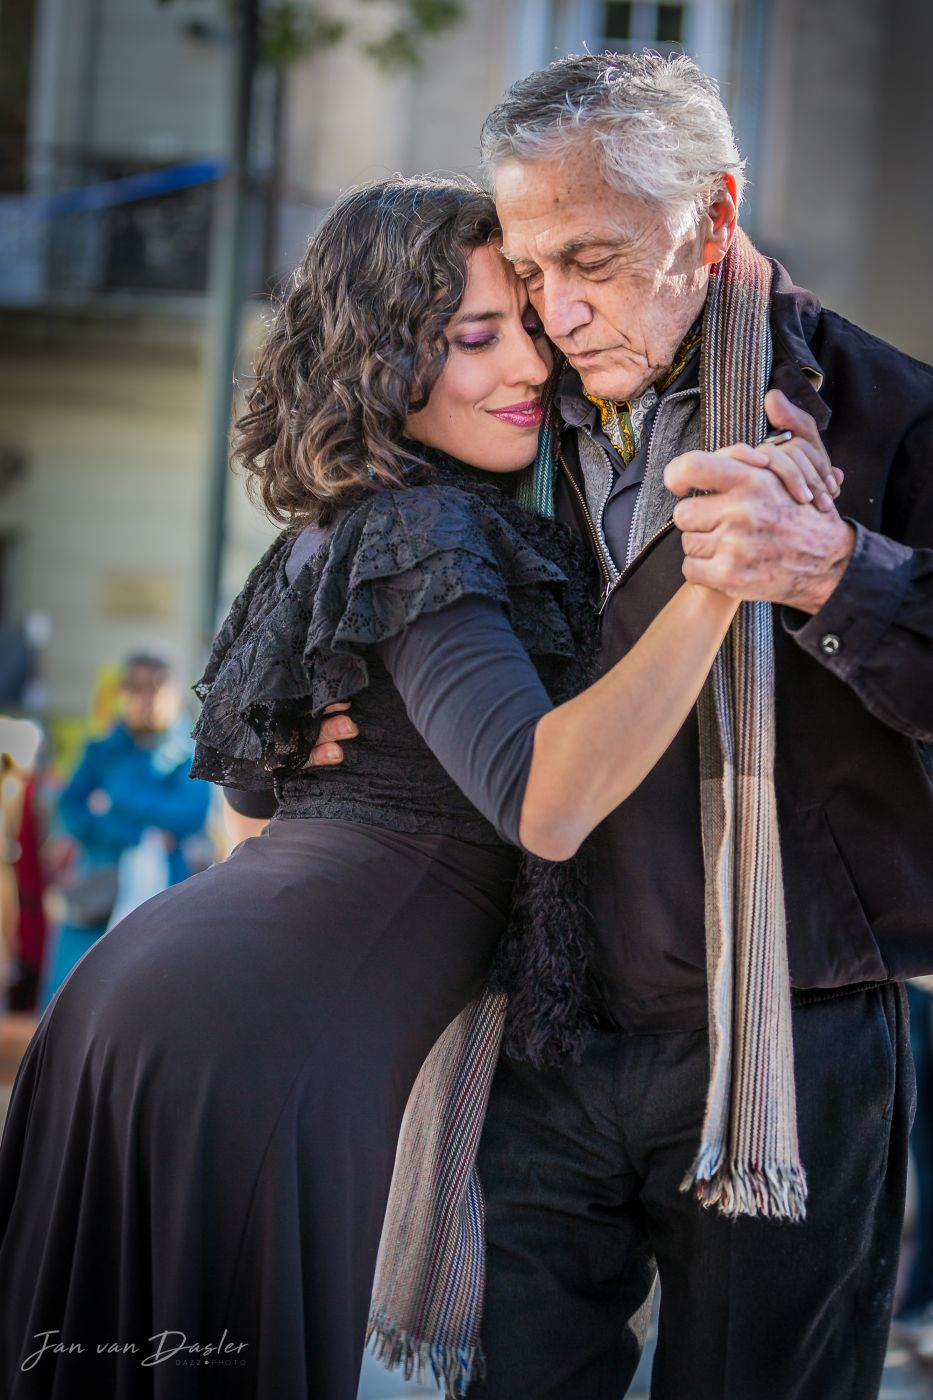 Tango Dancing at Plaza Dorrego, Argentina